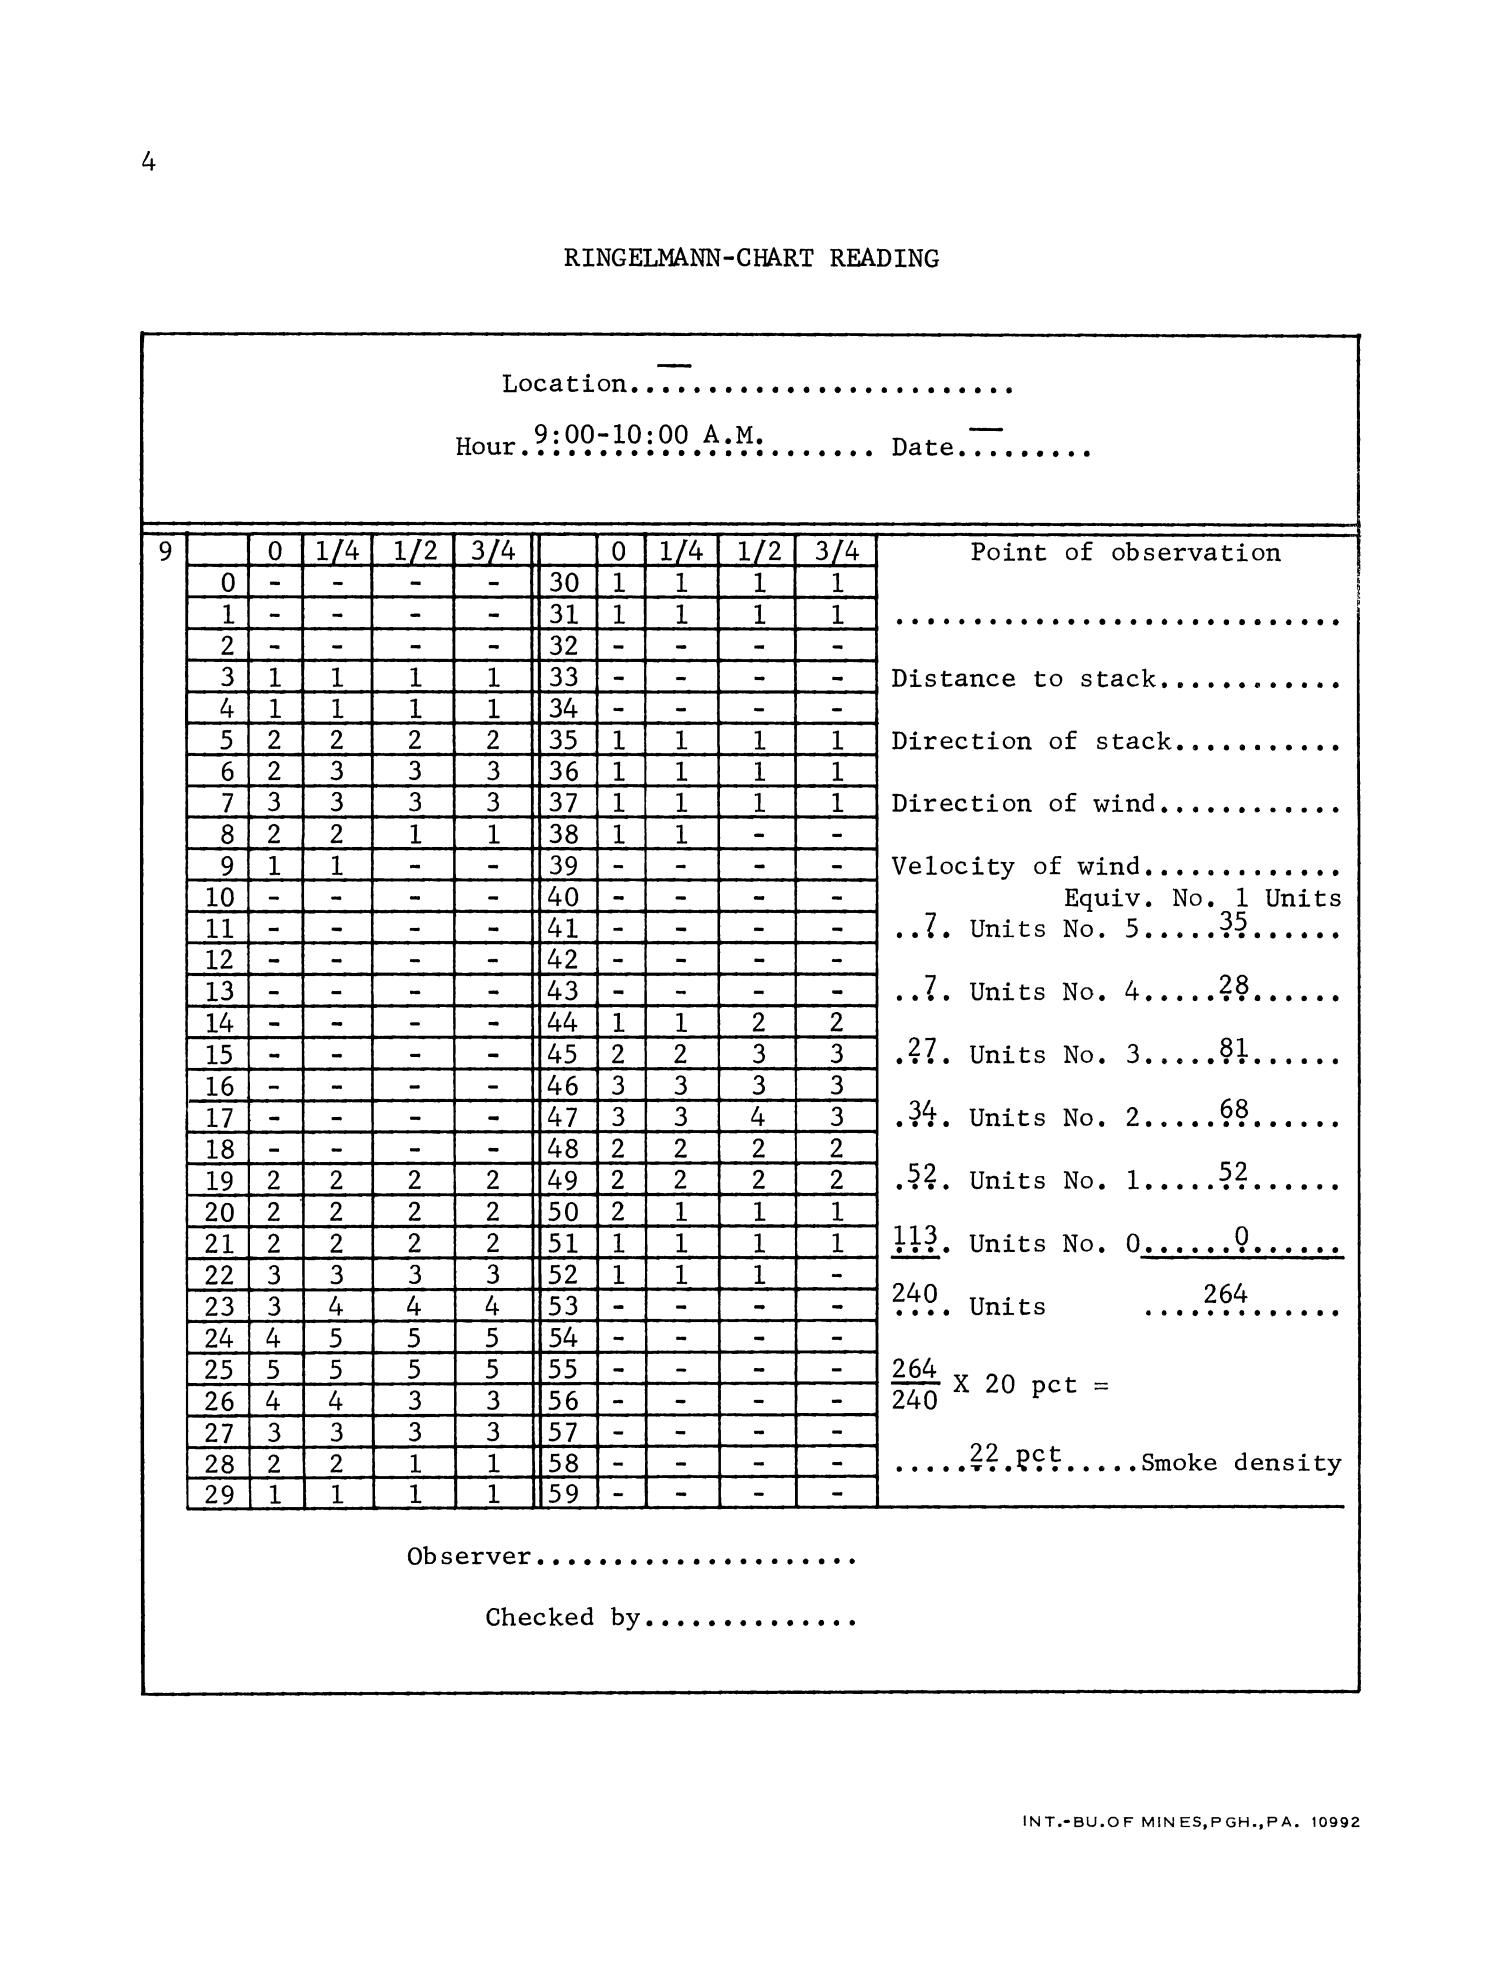 Ringelmann Smoke Chart: Revision of IC 7718 - Page 4 - Digital Library